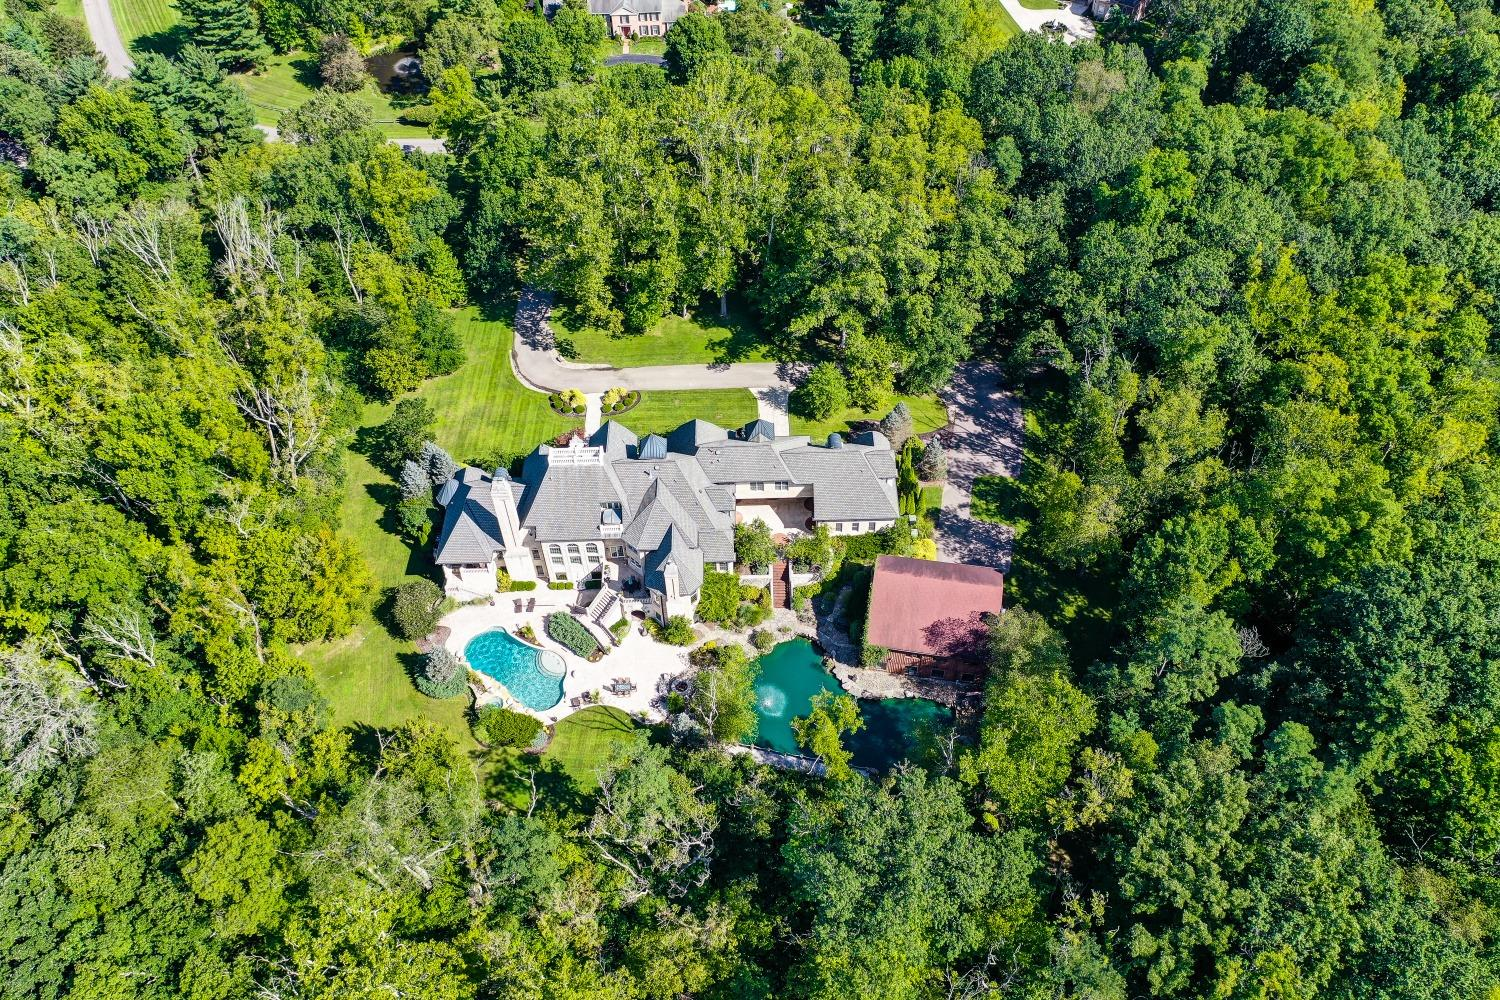 From top to bottom, inside and out, this rare estate has been lovingly constructed of the highest-quality materials to accommodate the finest lifestyles.